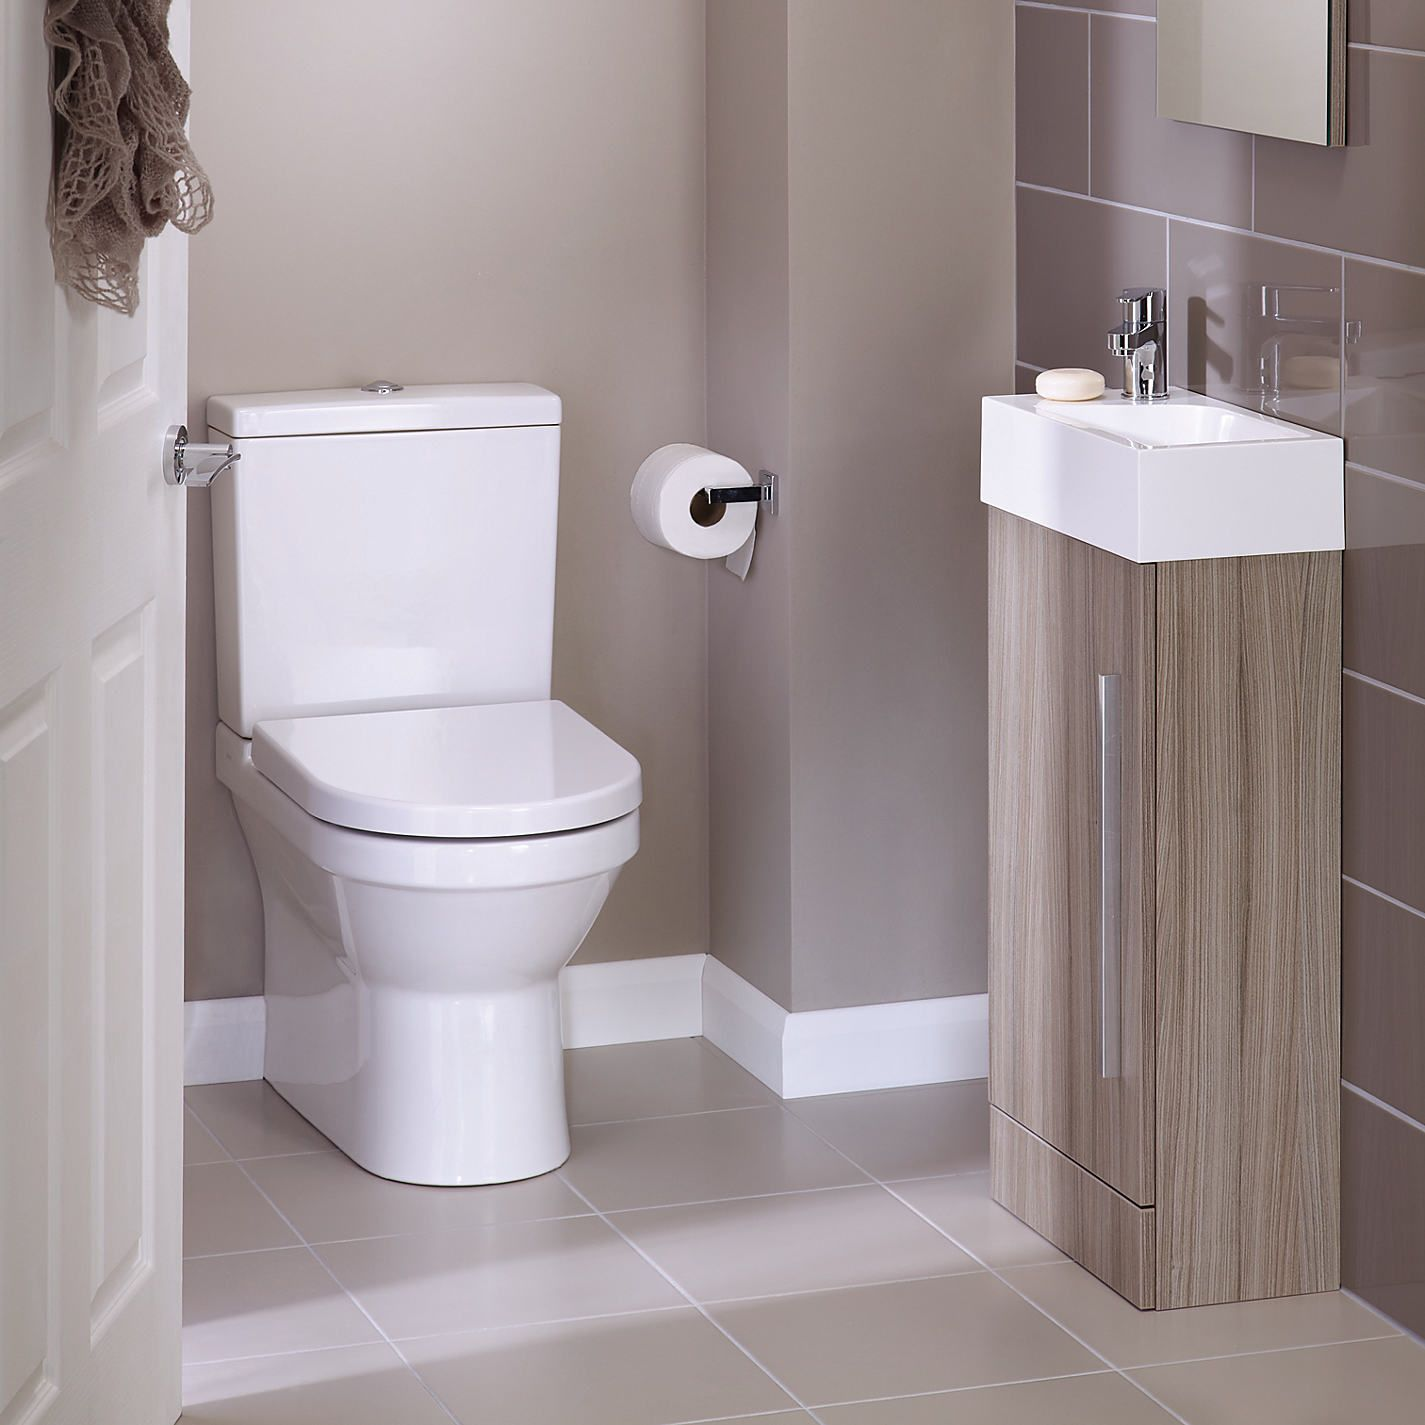 Small Cloakroom Ideas Google Search Cloakroom Toilet Downstairs Loo Small Toilet Room Downstairs Cloakroom